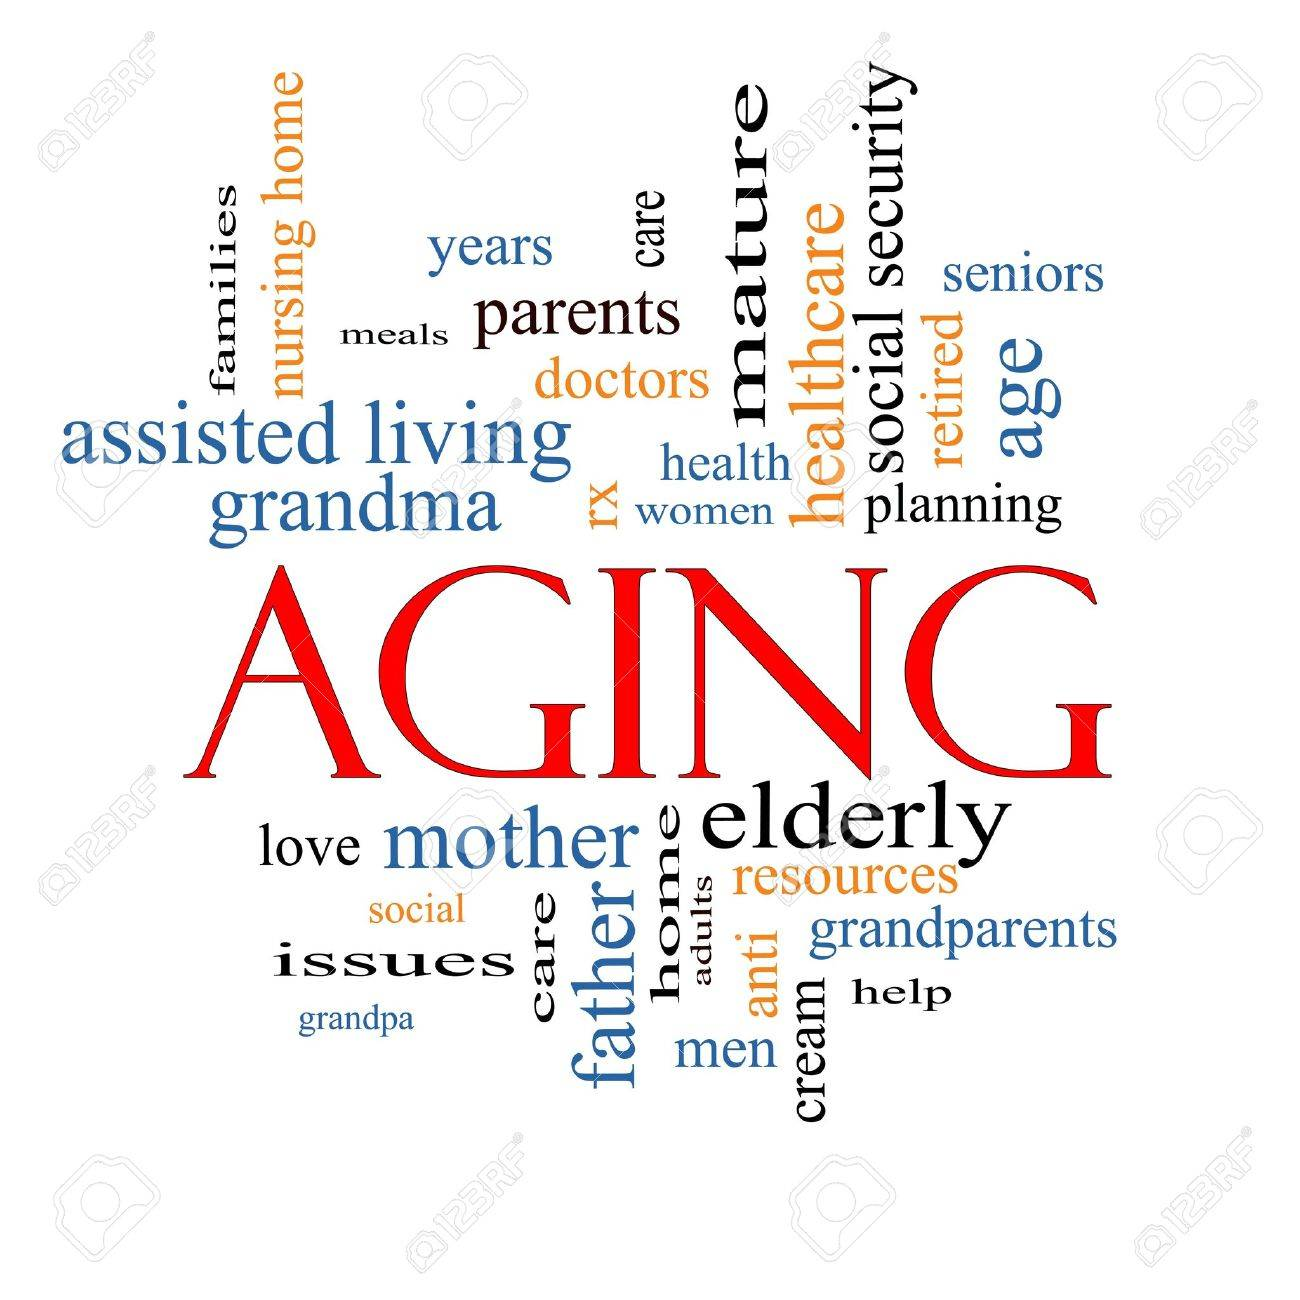 Image result for aging parents